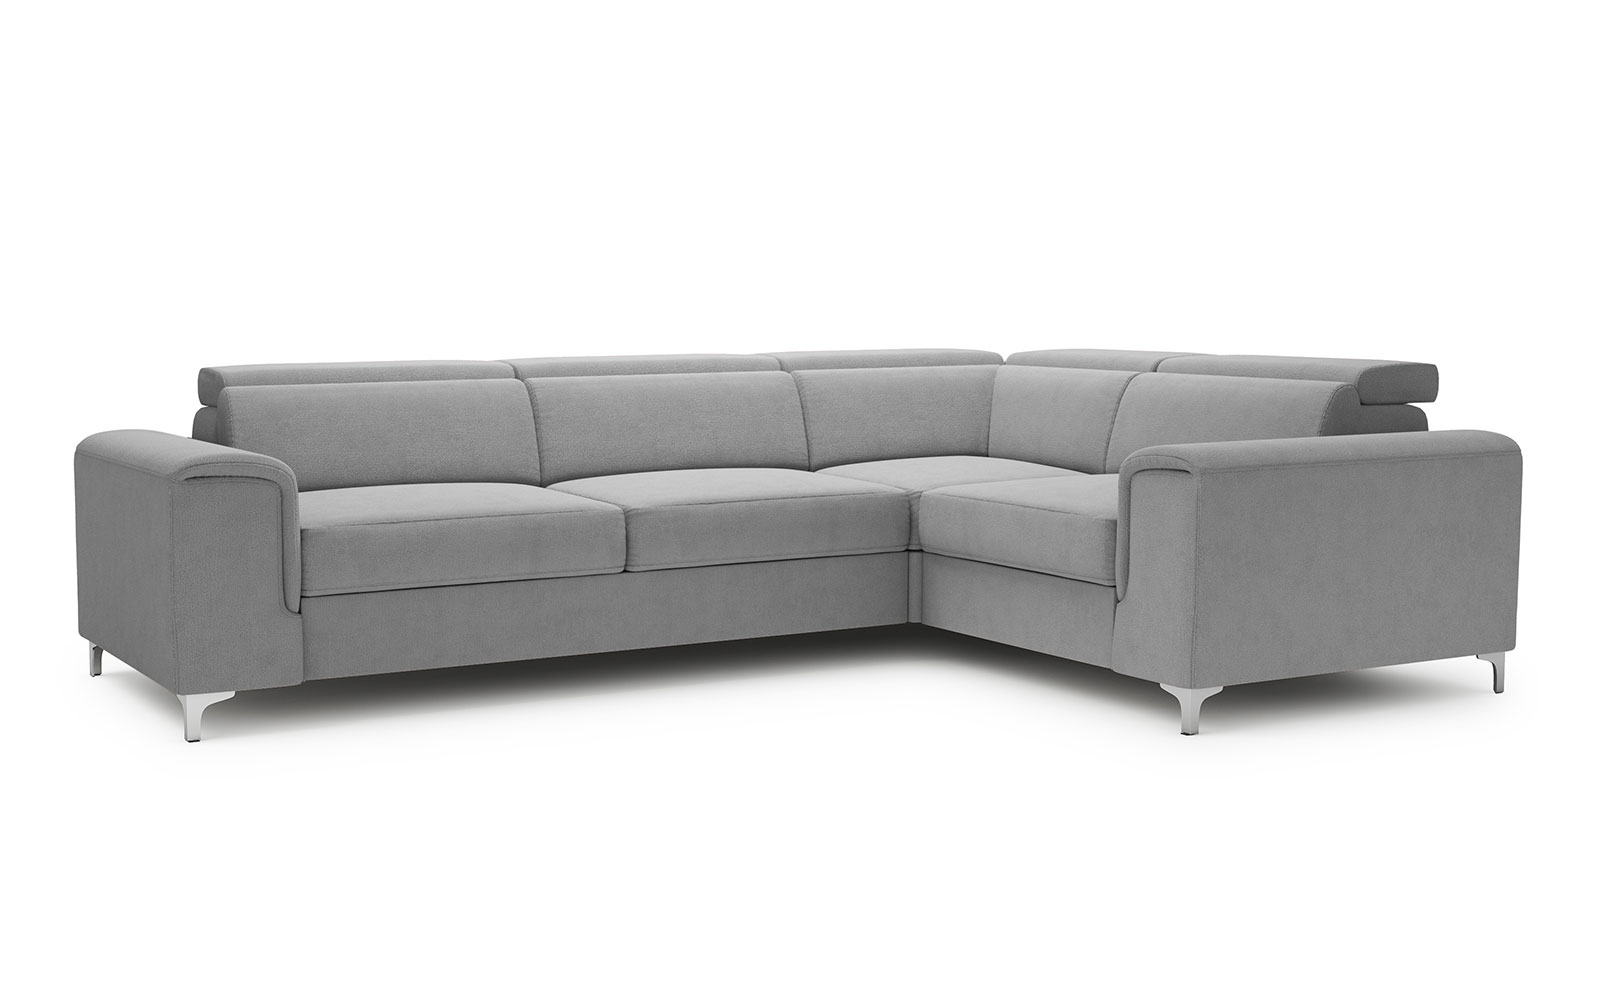 Genova Medium Corner Sofa - soft touch silver